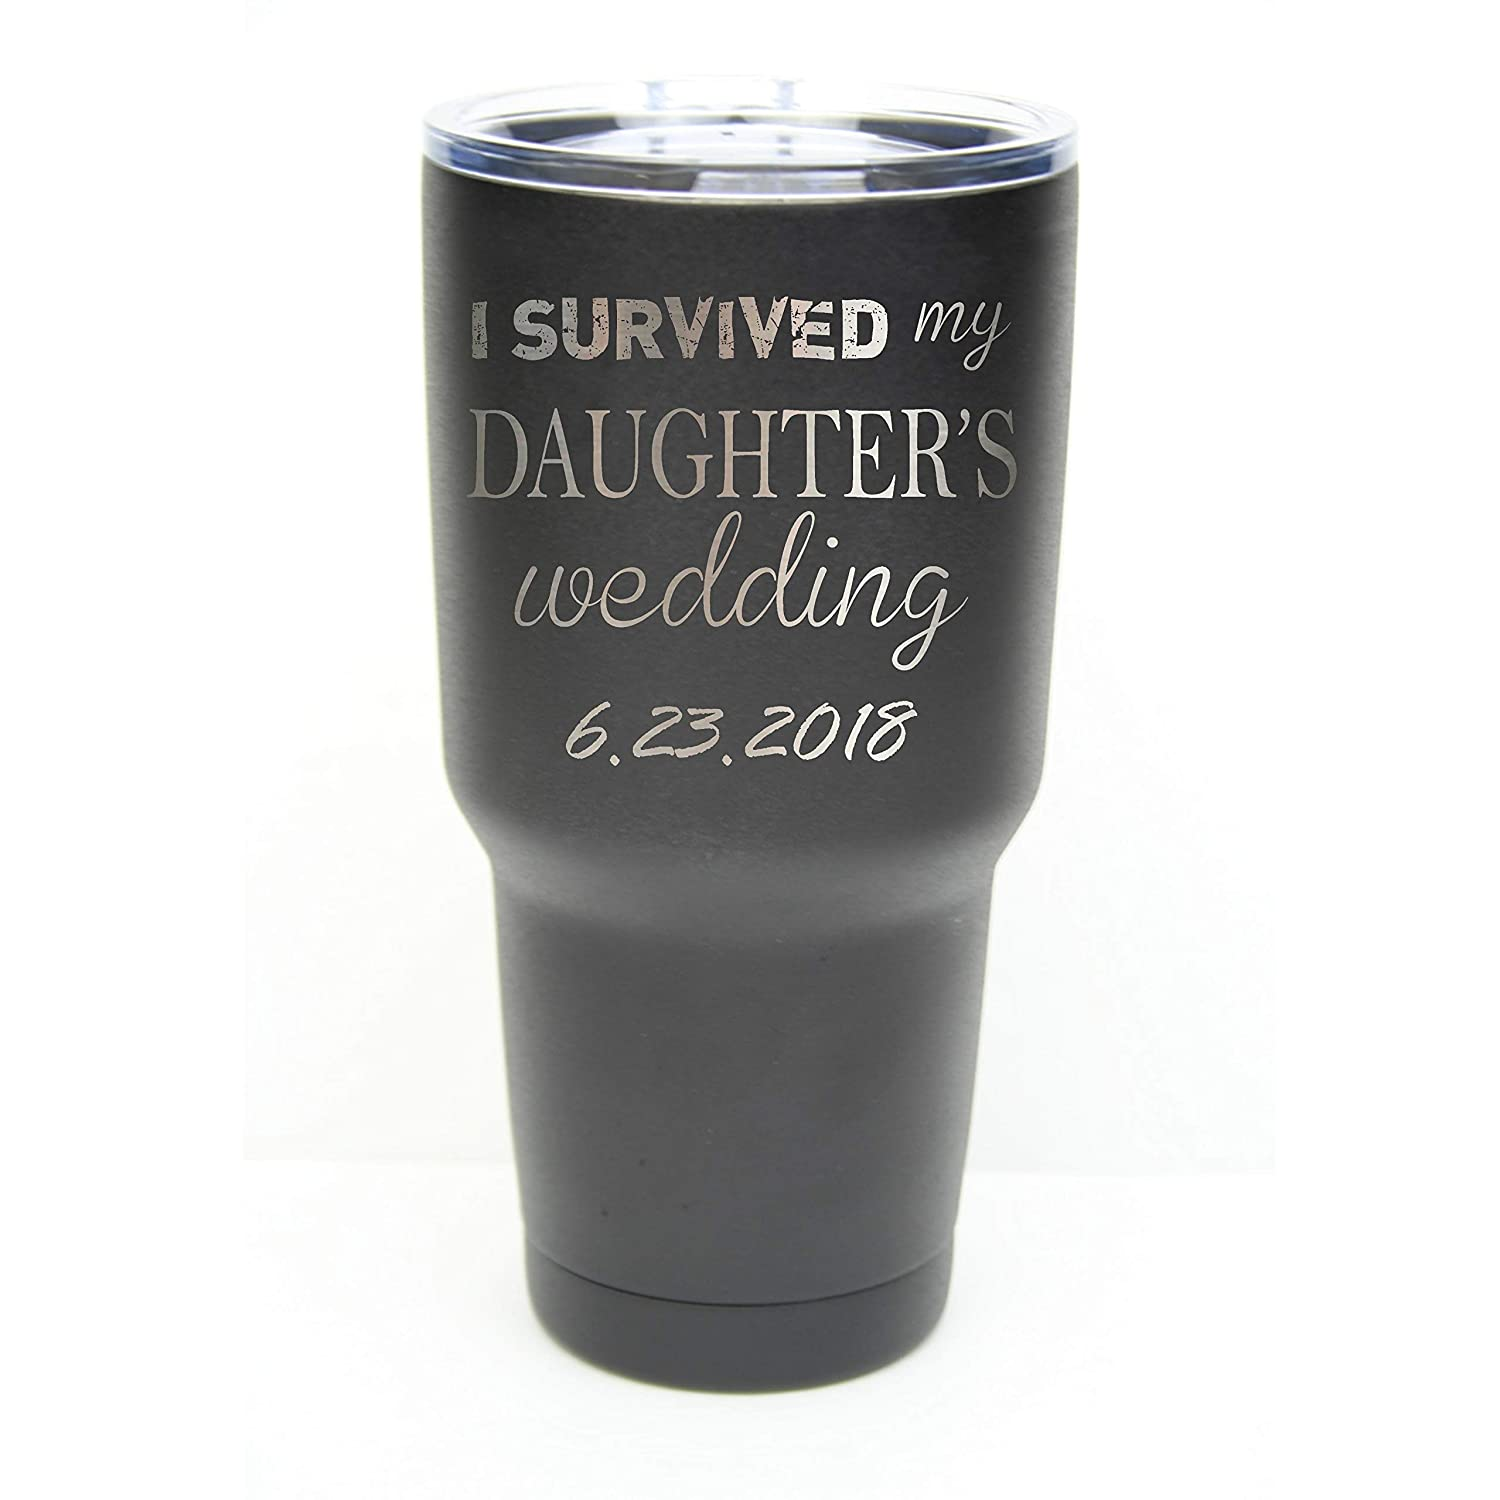 I Survived My Daughter's Wedding Tumbler Discount Beauty products is also underway a made with Lid Clear o